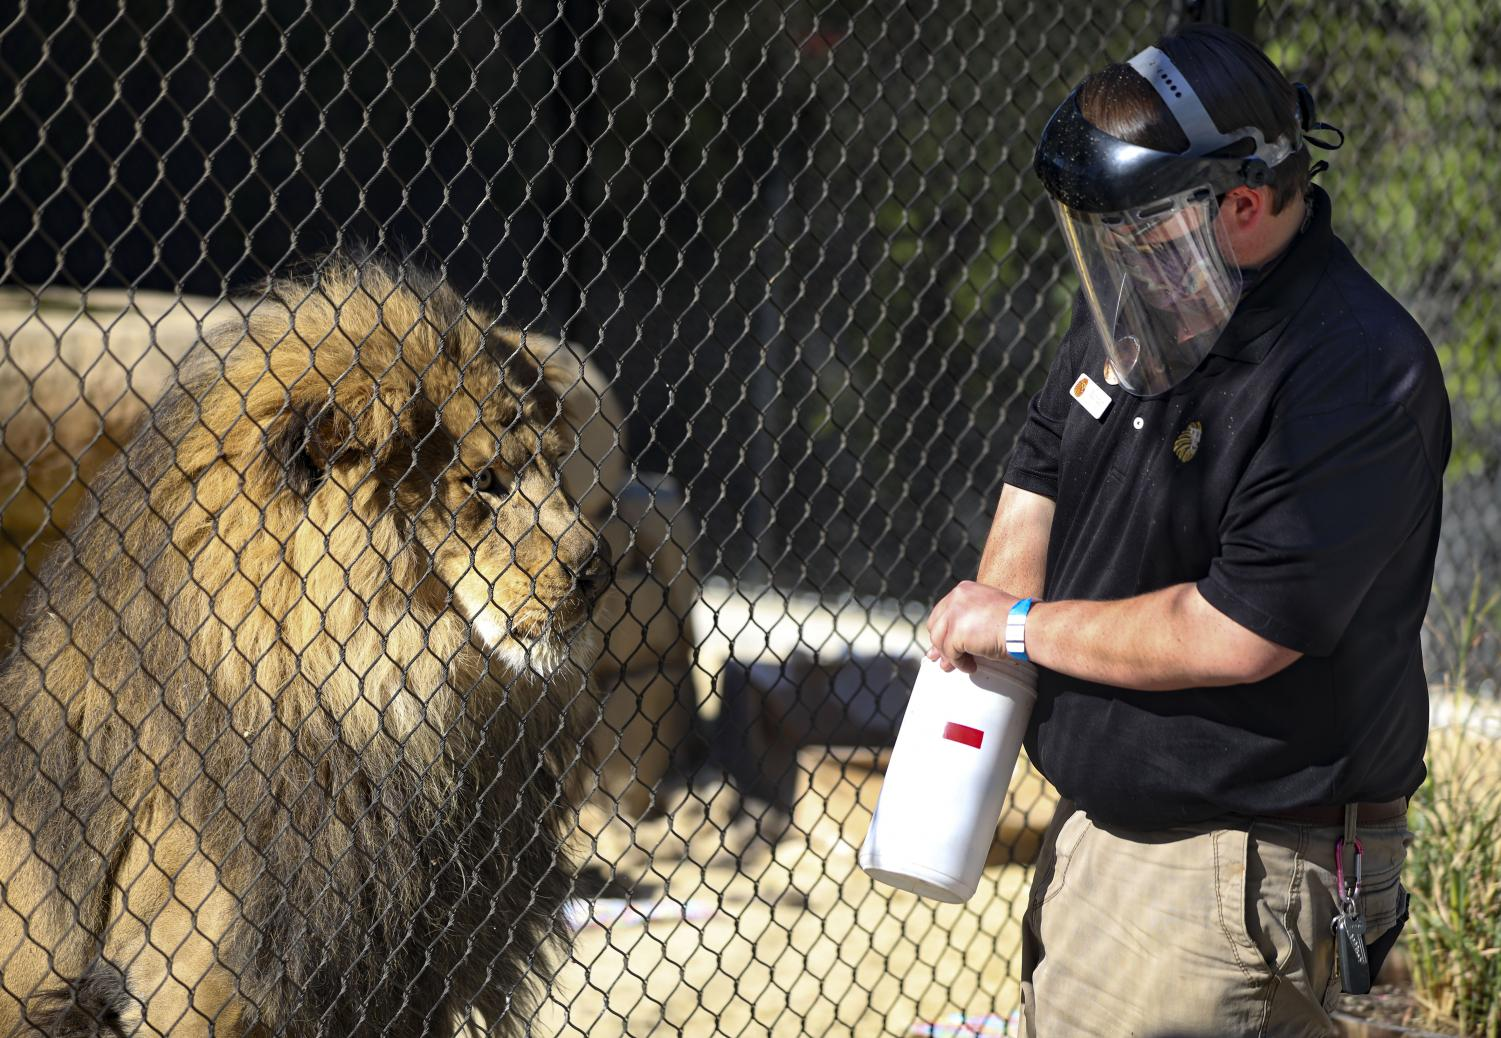 Xander Mora, a second year EATM student, feeds Ira the lion during Ira's seventh birthday celebration at America's Teaching Zoo in Moorpark, CA on Saturday, Feb. 6, 2021.